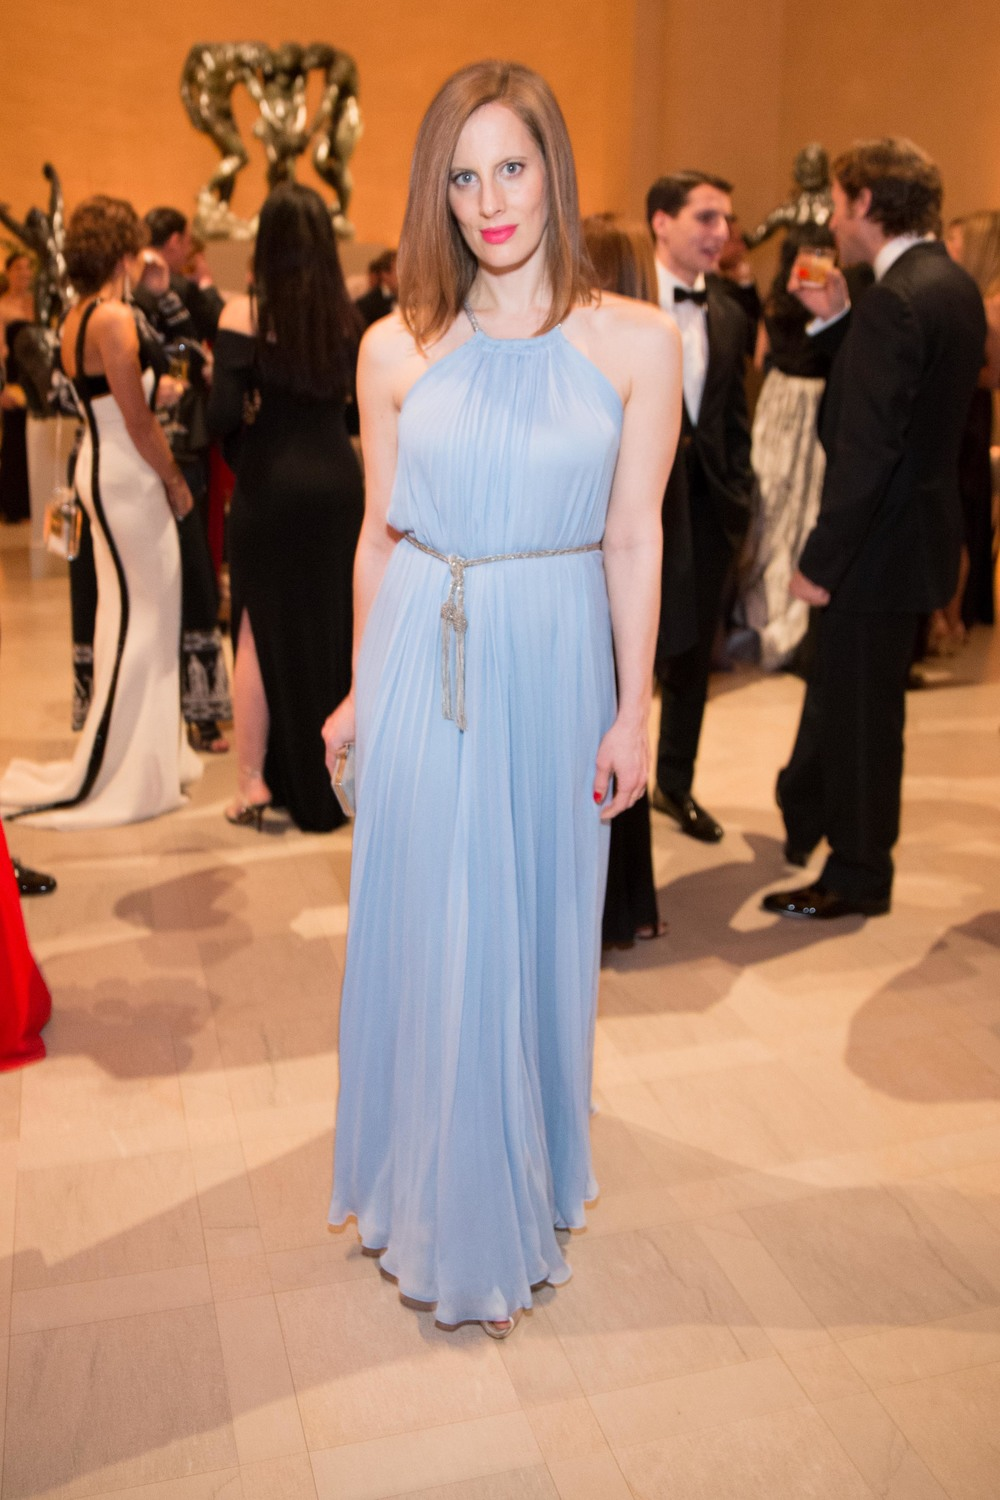 Liz Goldwyn at the Salvatore Ferragamo 2014 Mid-Winter gala to benefit the Fine Arts Museums, San Francisco, wearing Salvatore Ferragamo